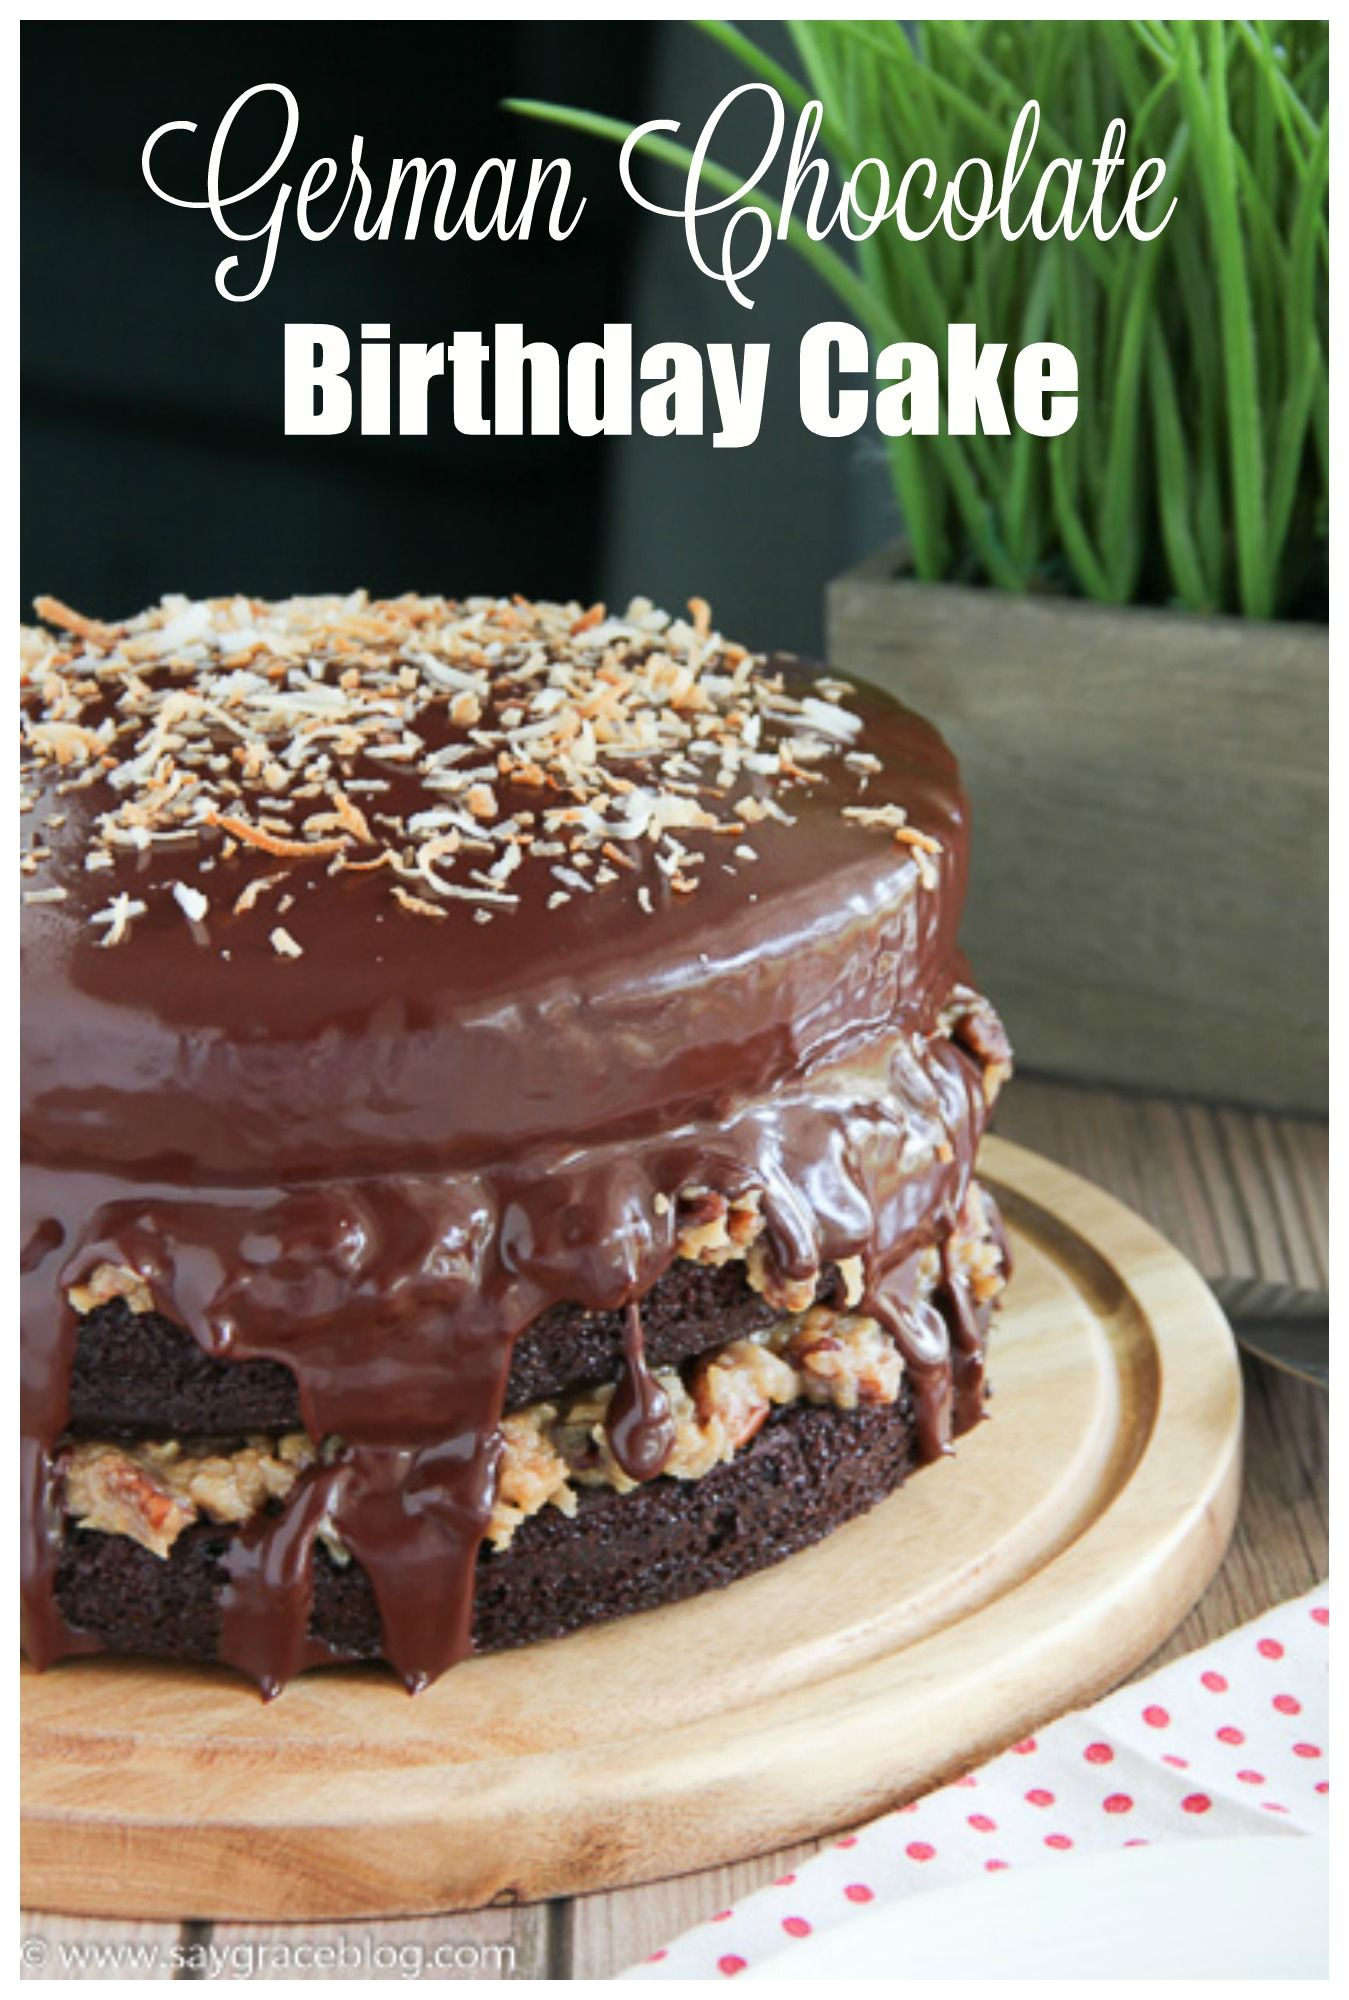 German Chocolate Birthday Cake Recipe Cake Cake Cake